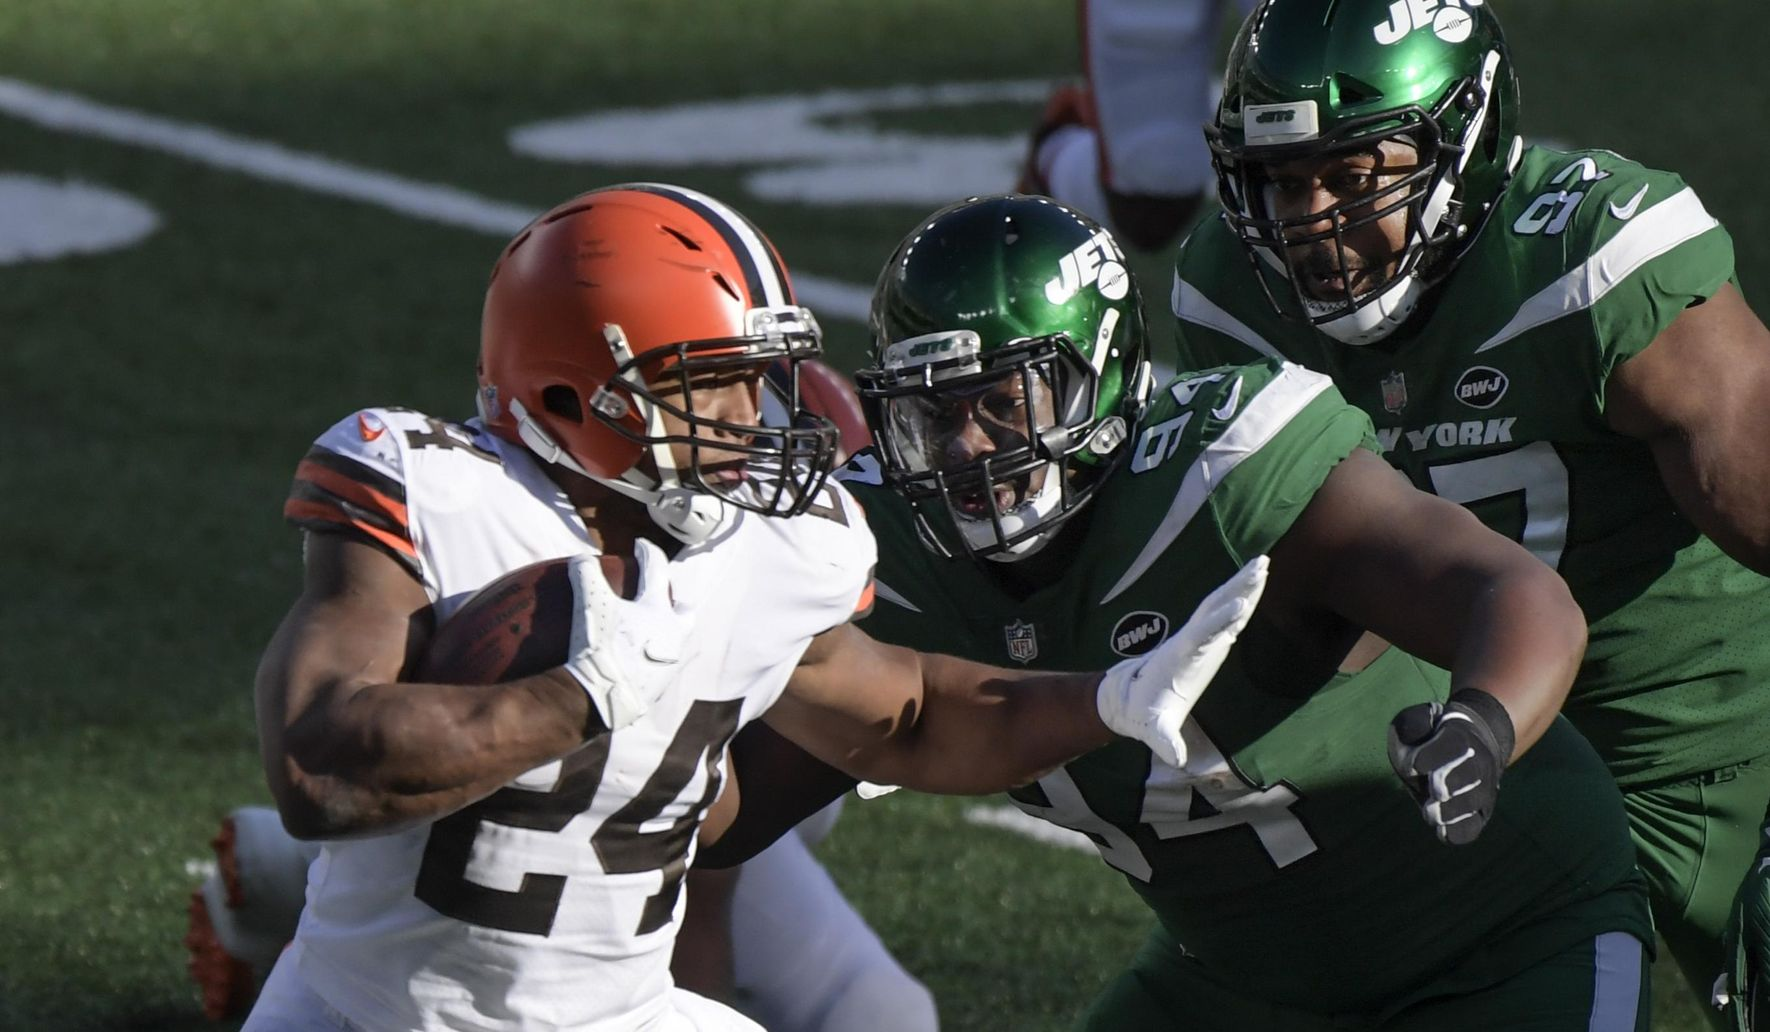 Browns_jets_football_94967_c0-114-2719-1699_s1770x1032